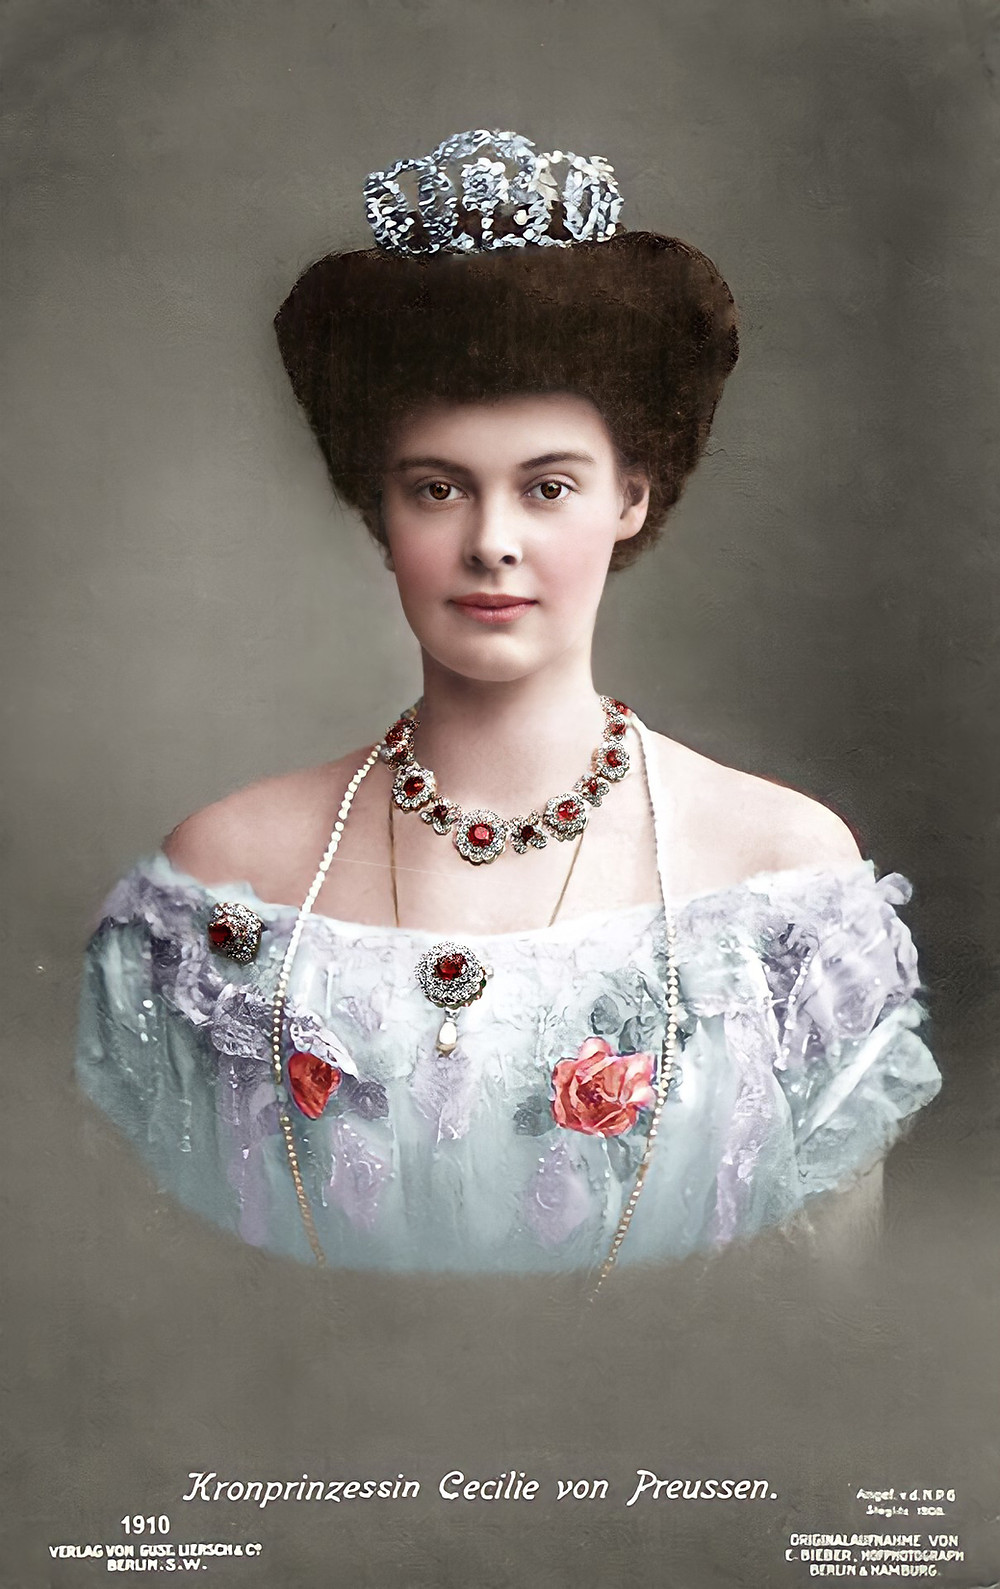 Duchess Cecilie of Mecklenburg-Schwerin - Colorization by Claudia D'Souza